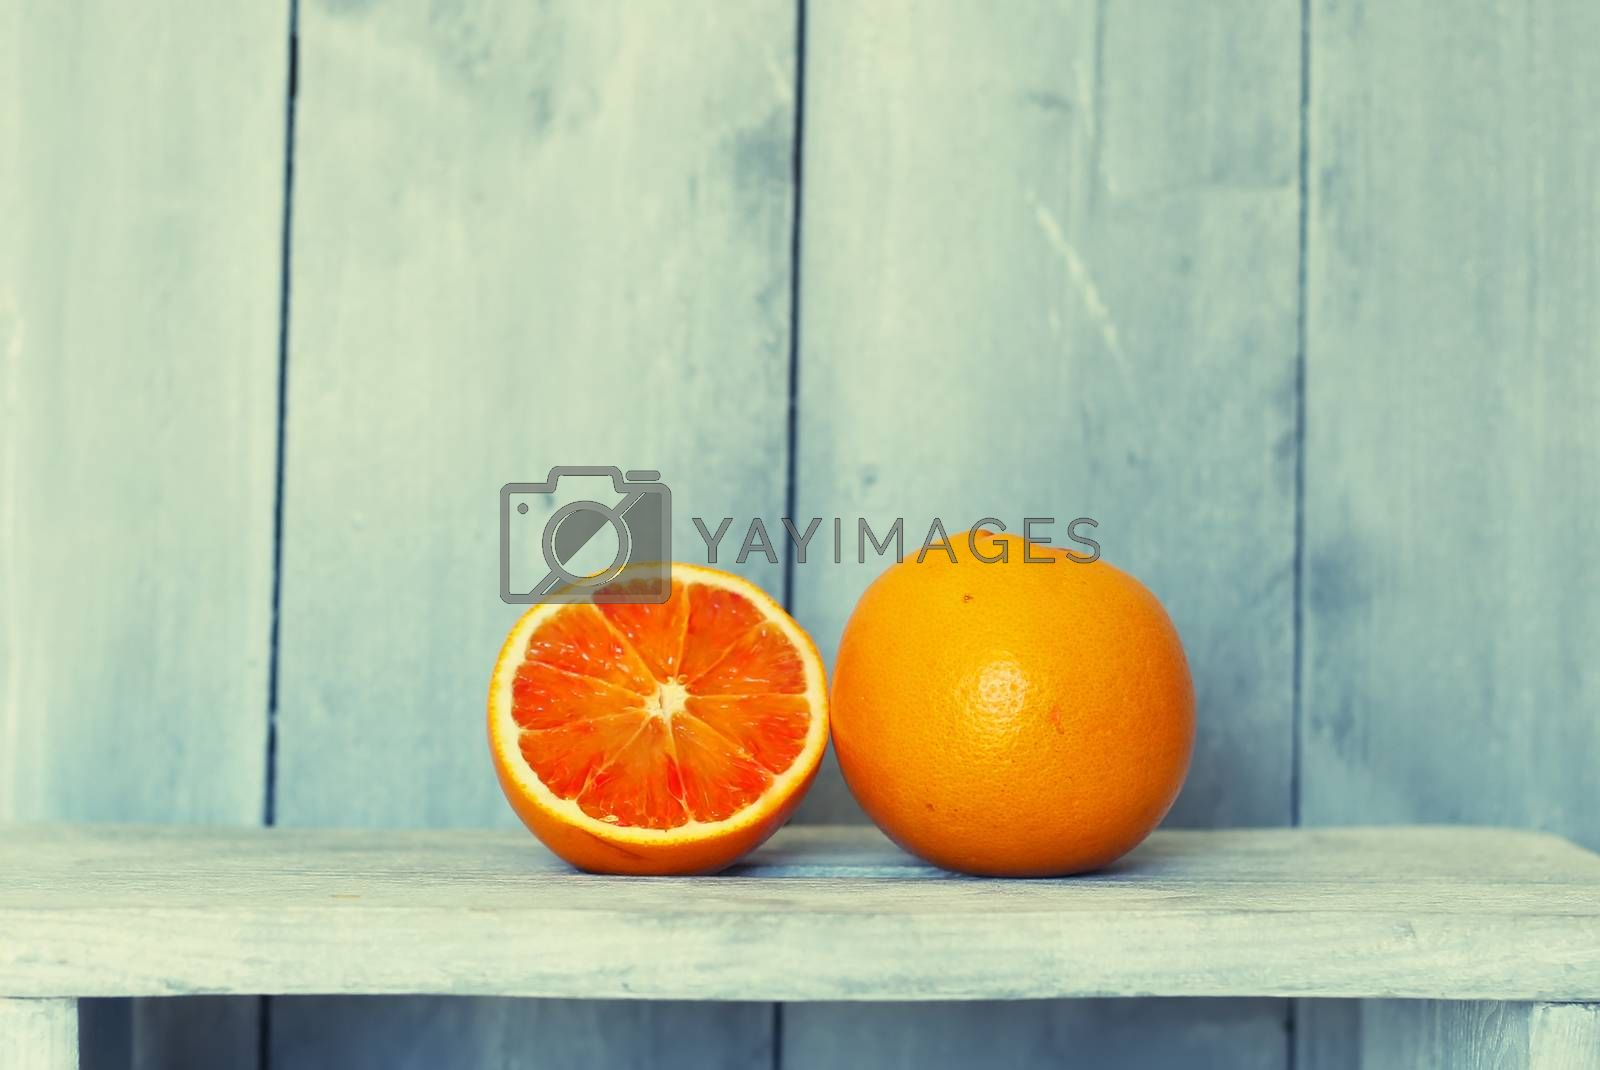 This is a photo of oranges on wooden background